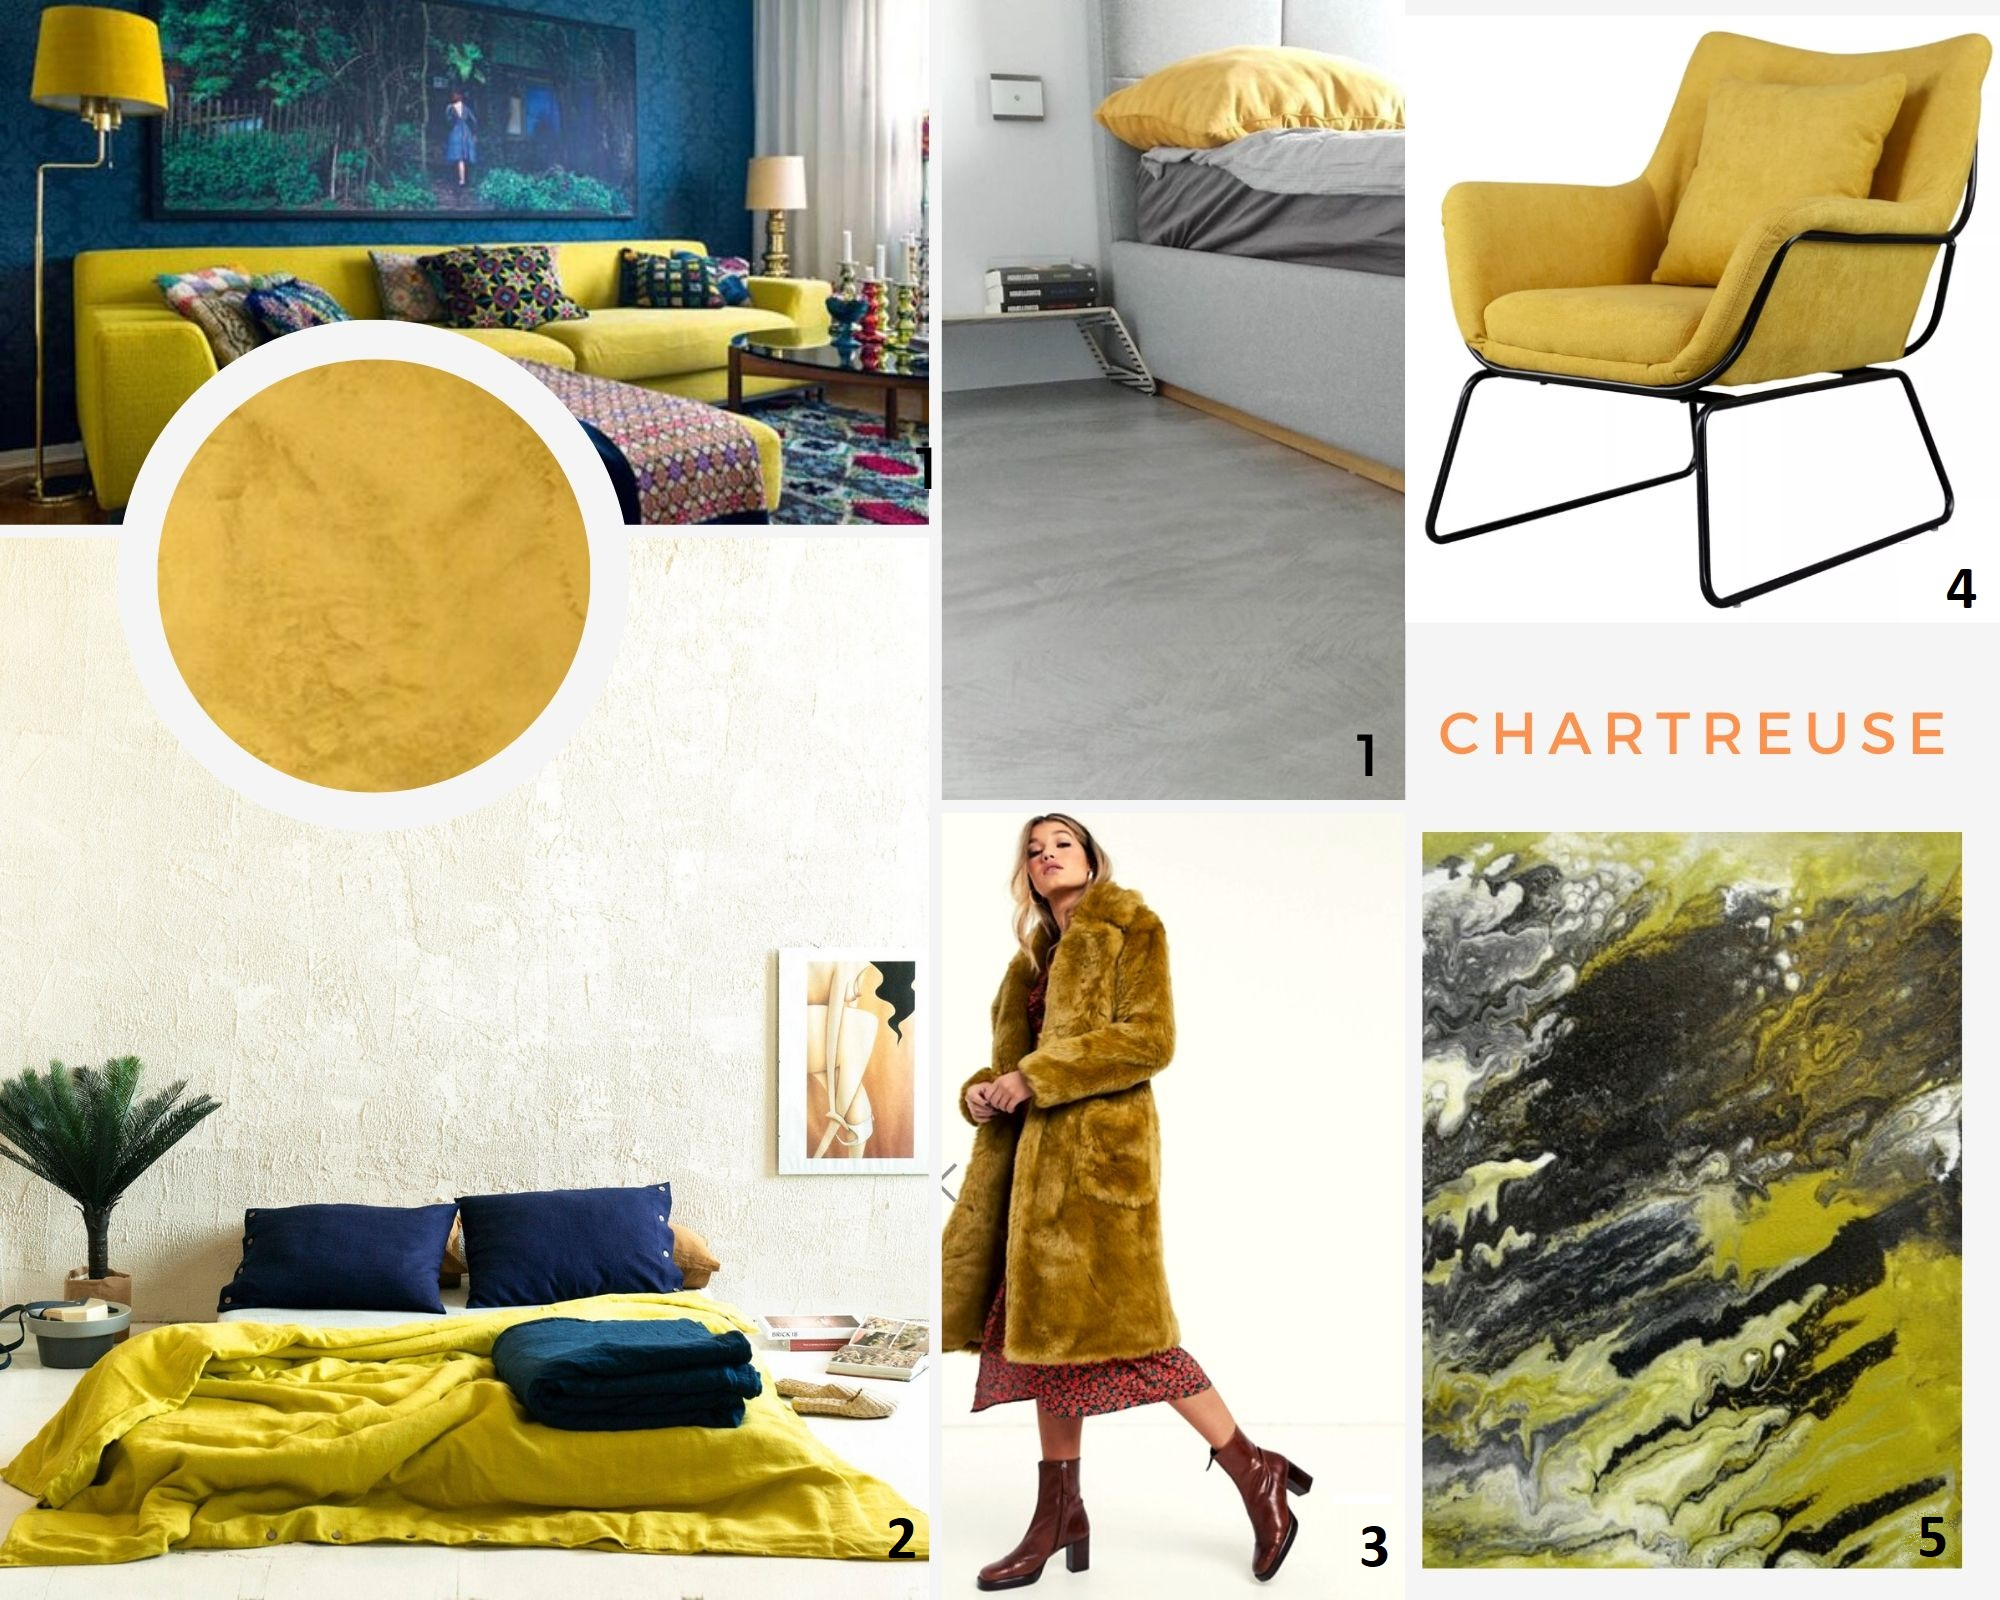 Trendy 2020: chartreuse - kolorowy mikrocement